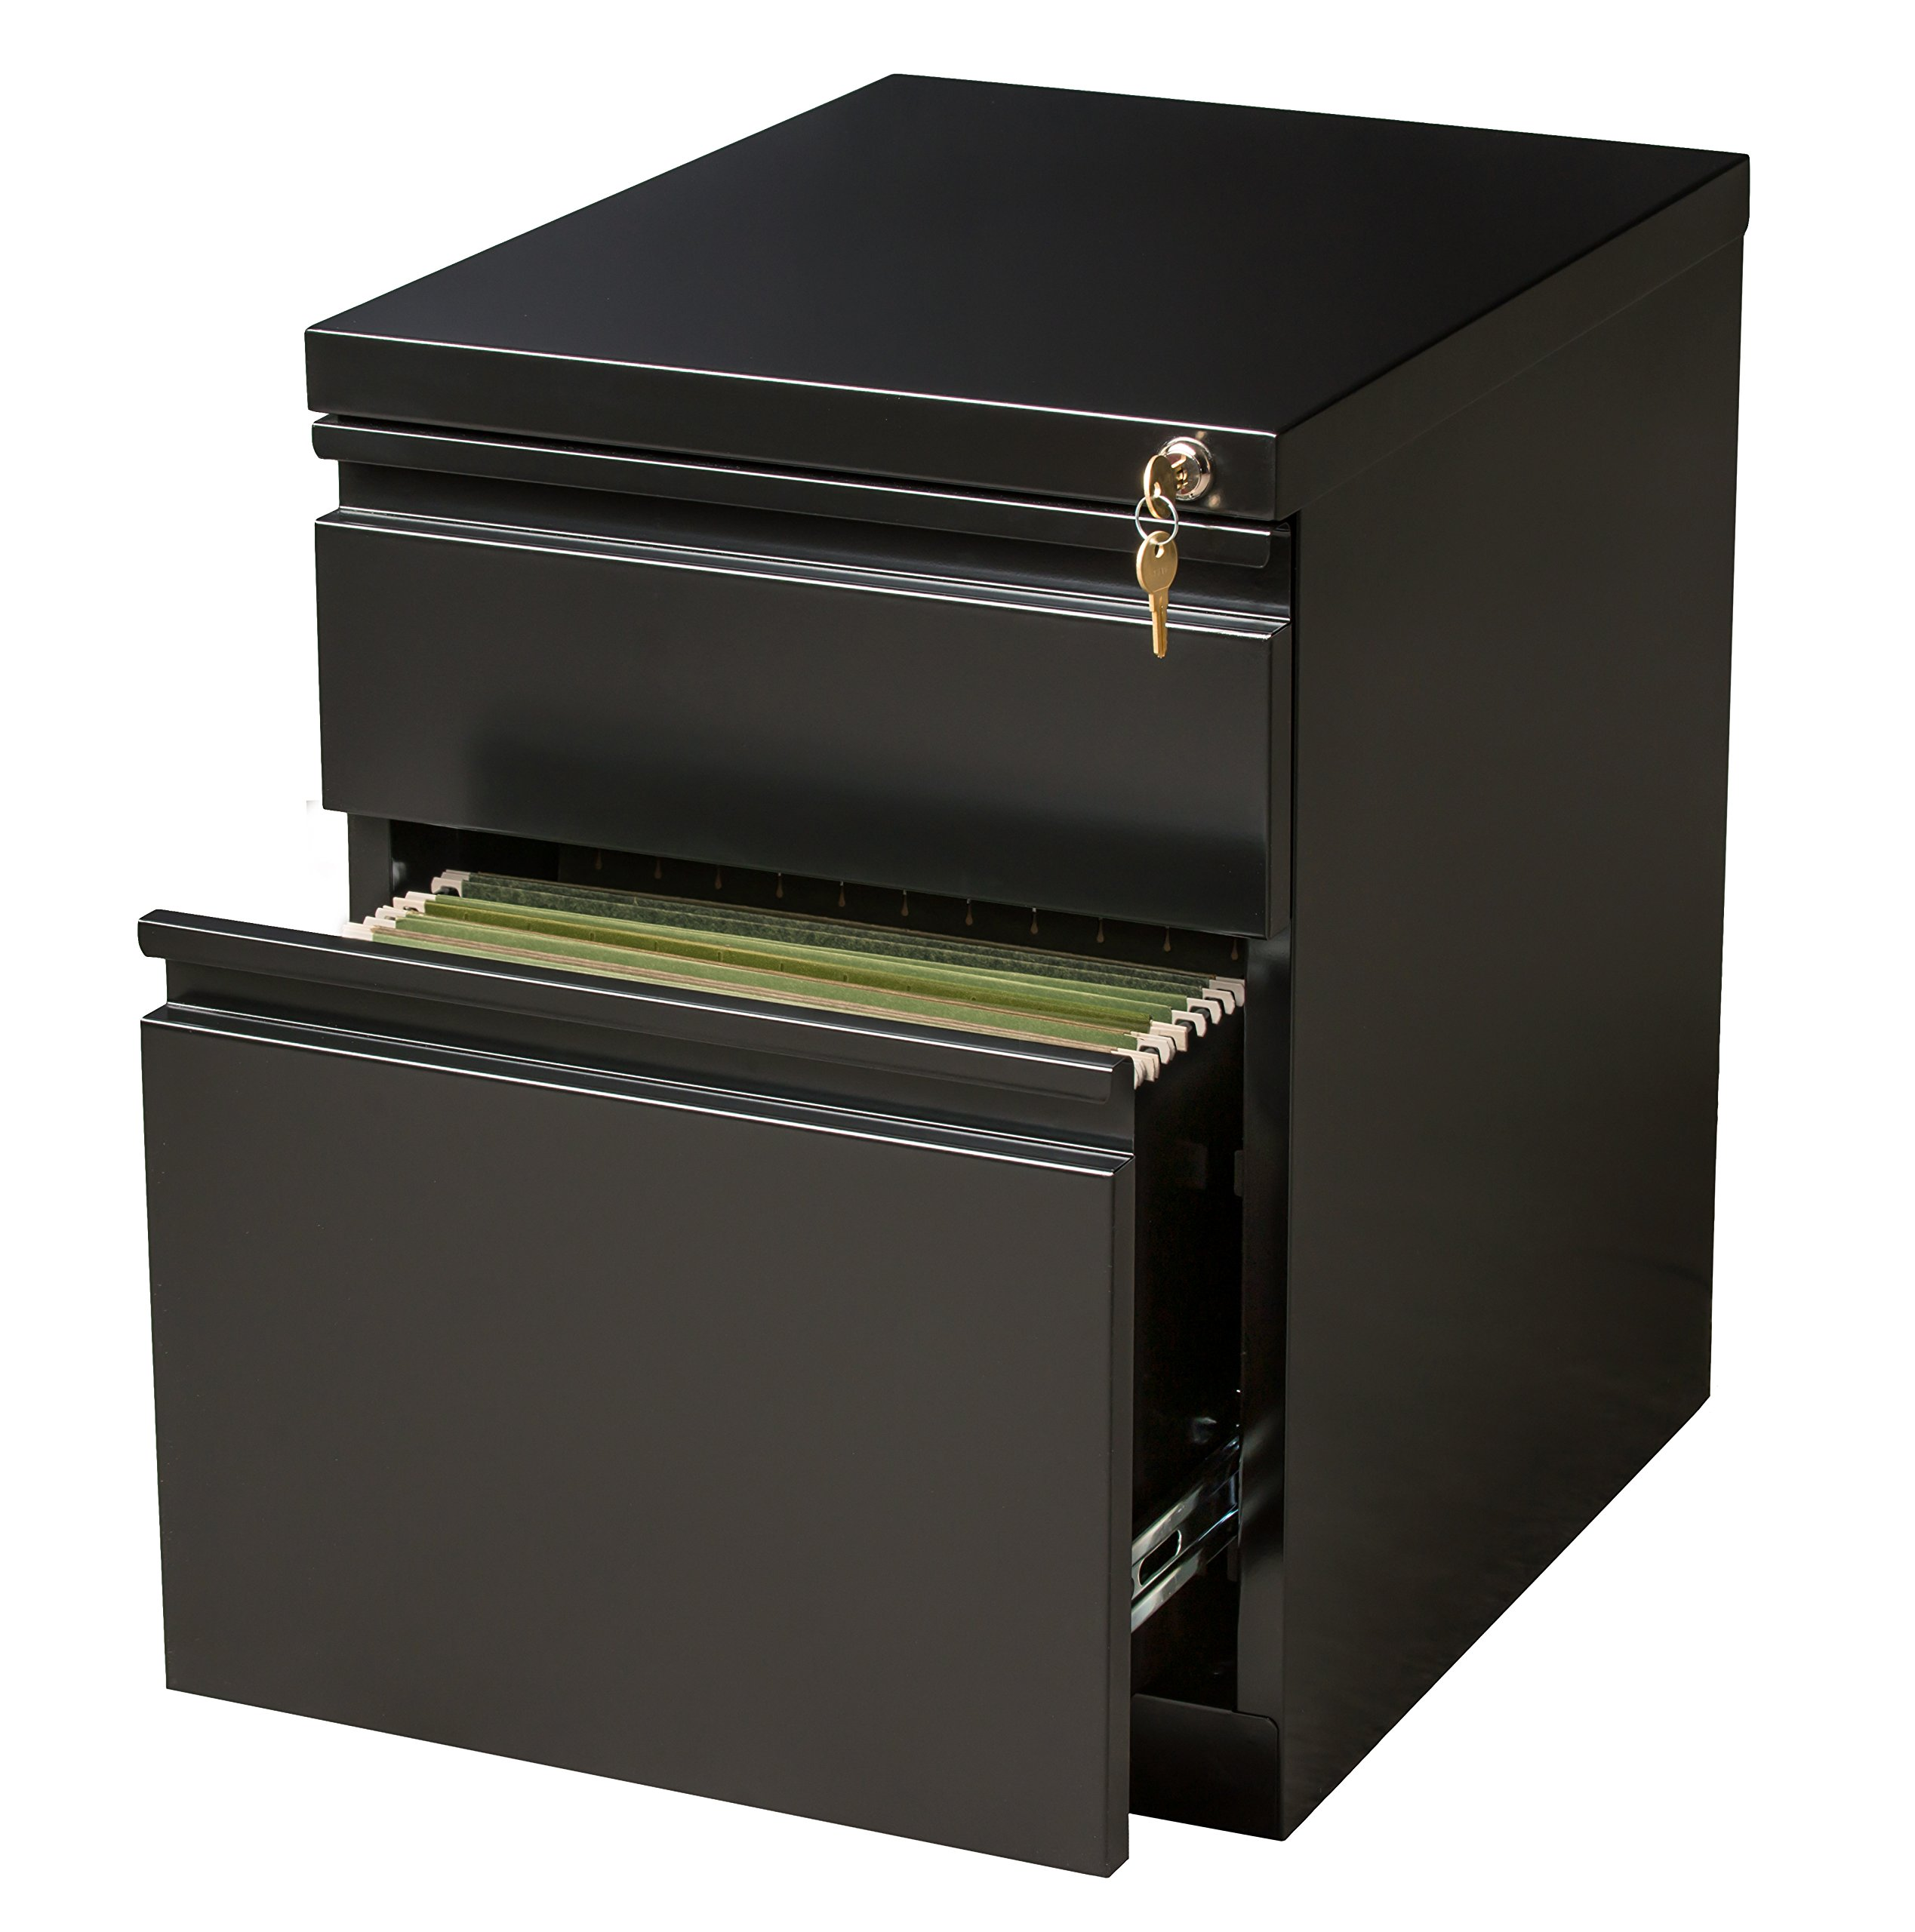 Office Dimensions 20'' File Cabinet w/ Storage Drawer, File Drawer and Concealed Wheels by Office Dimensions (Image #1)